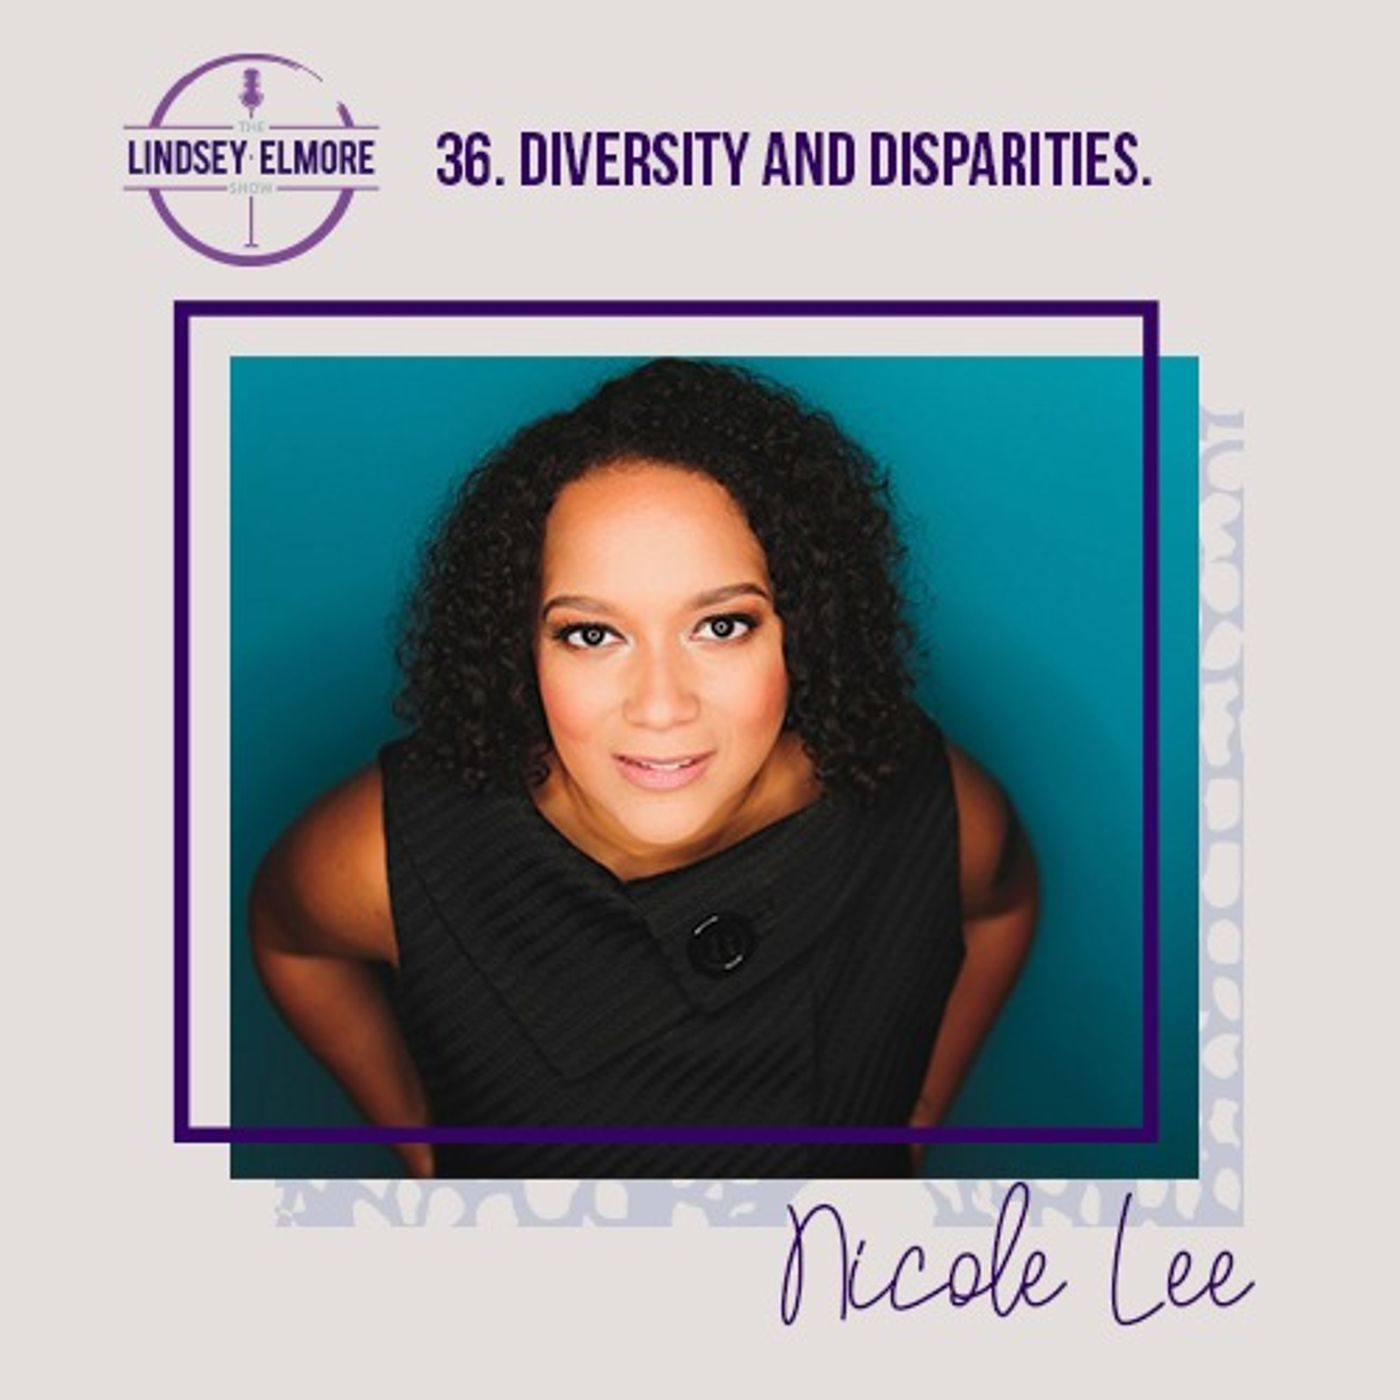 Diversity and disparities. An interview with Nicole Lee.